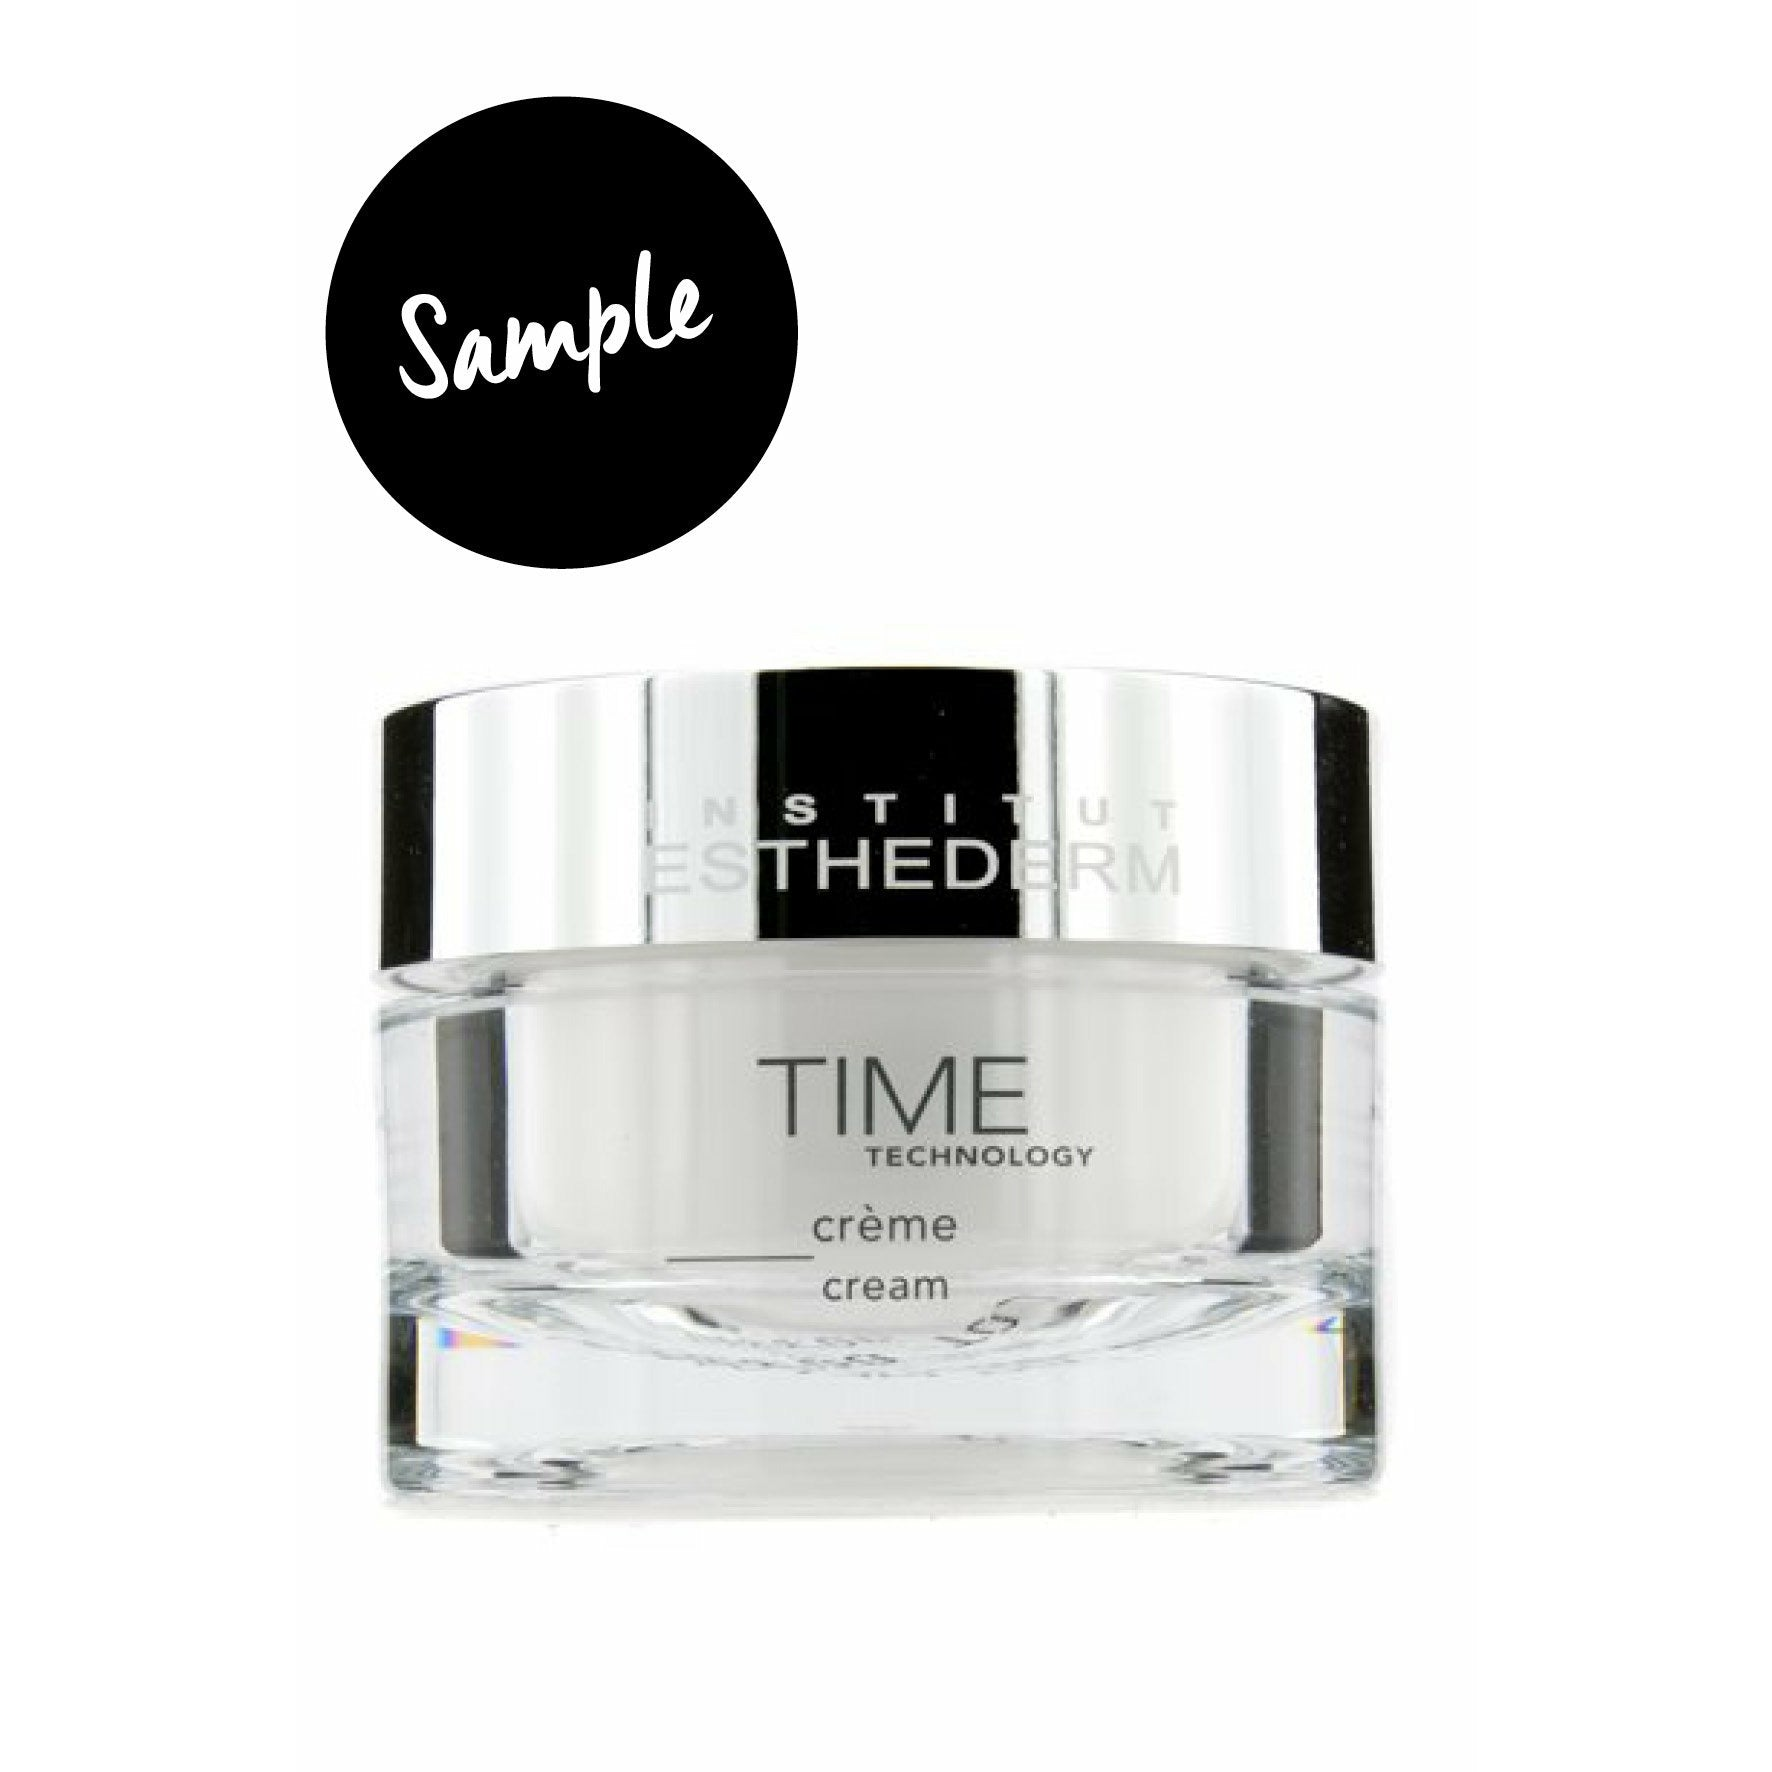 SAMPLE: Time Technology creme